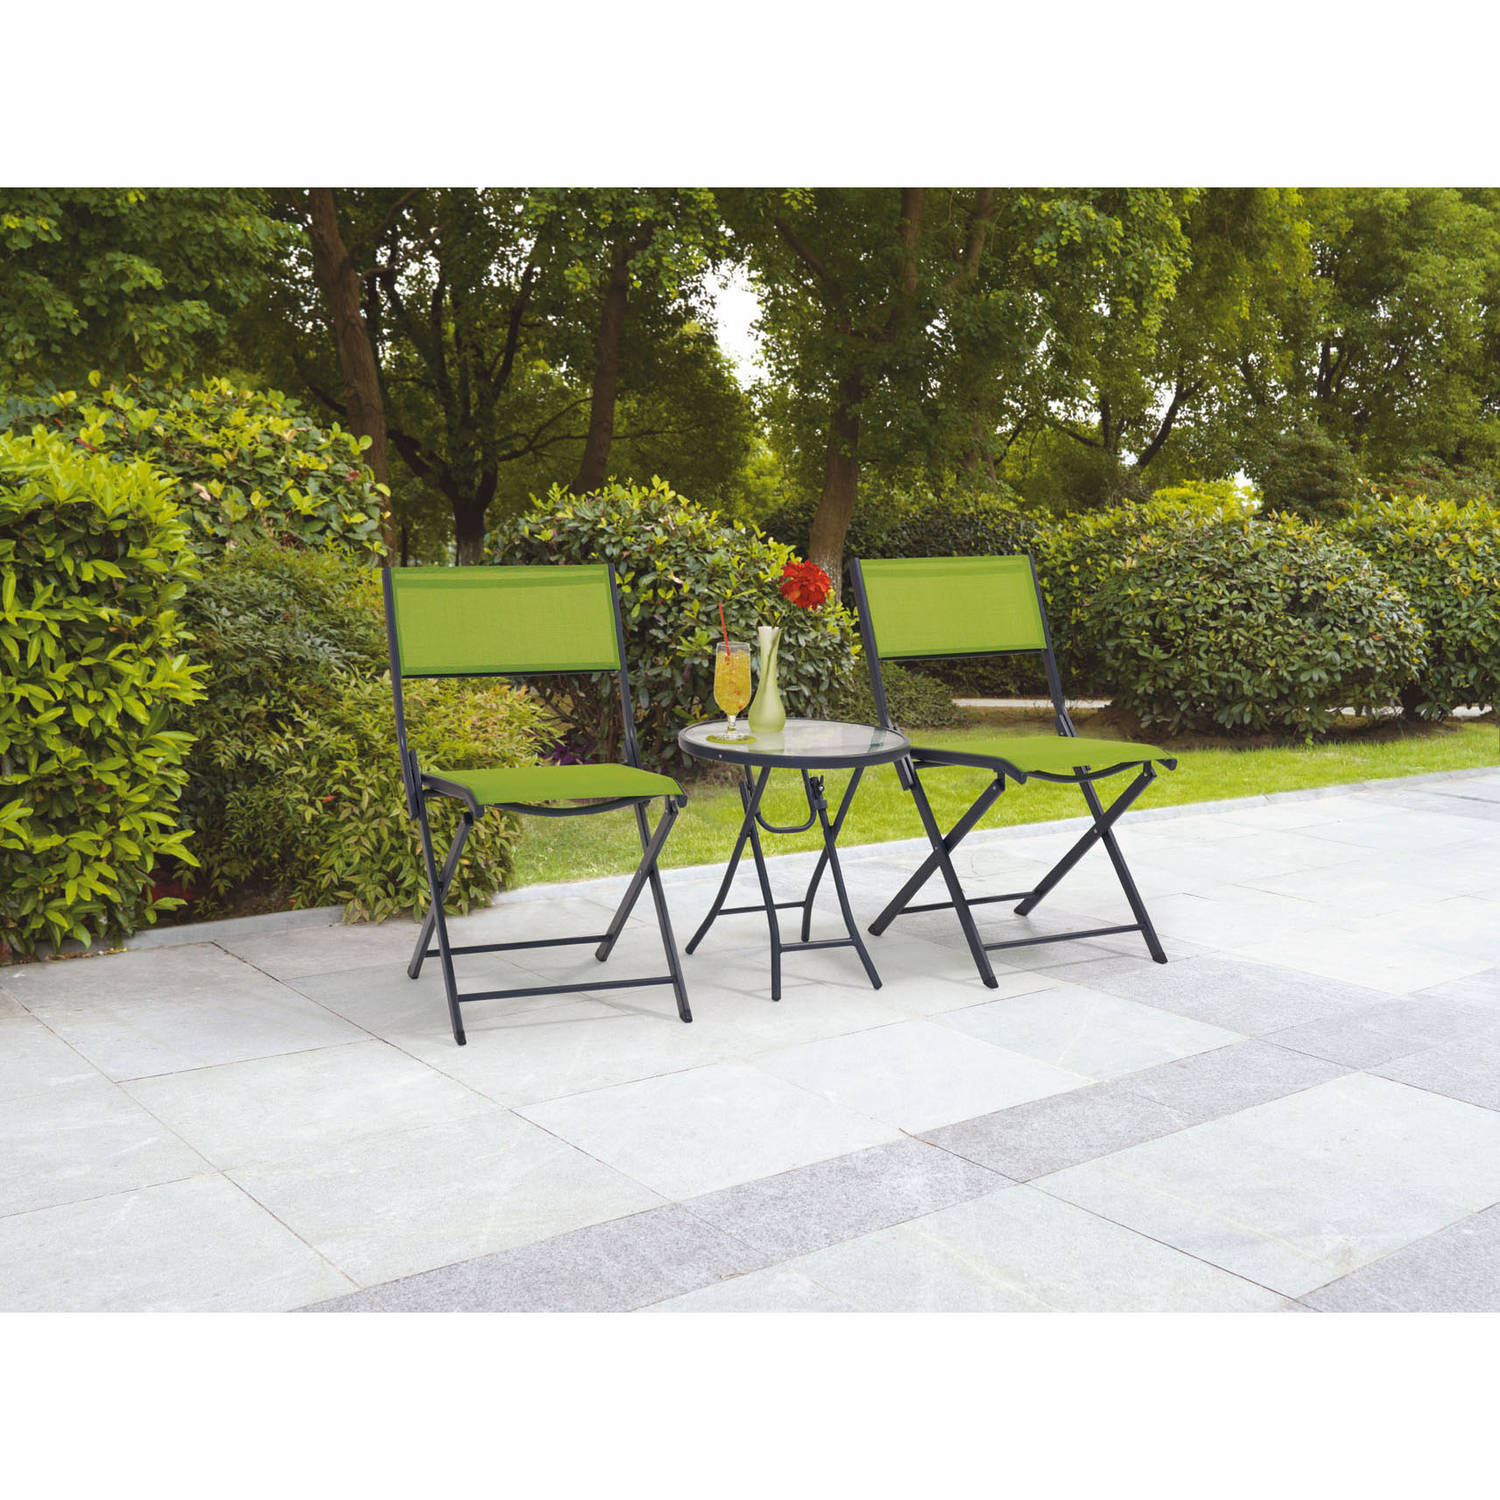 Mainstays Mystique Cove 3-Piece Folding Outdoor Bistro Set